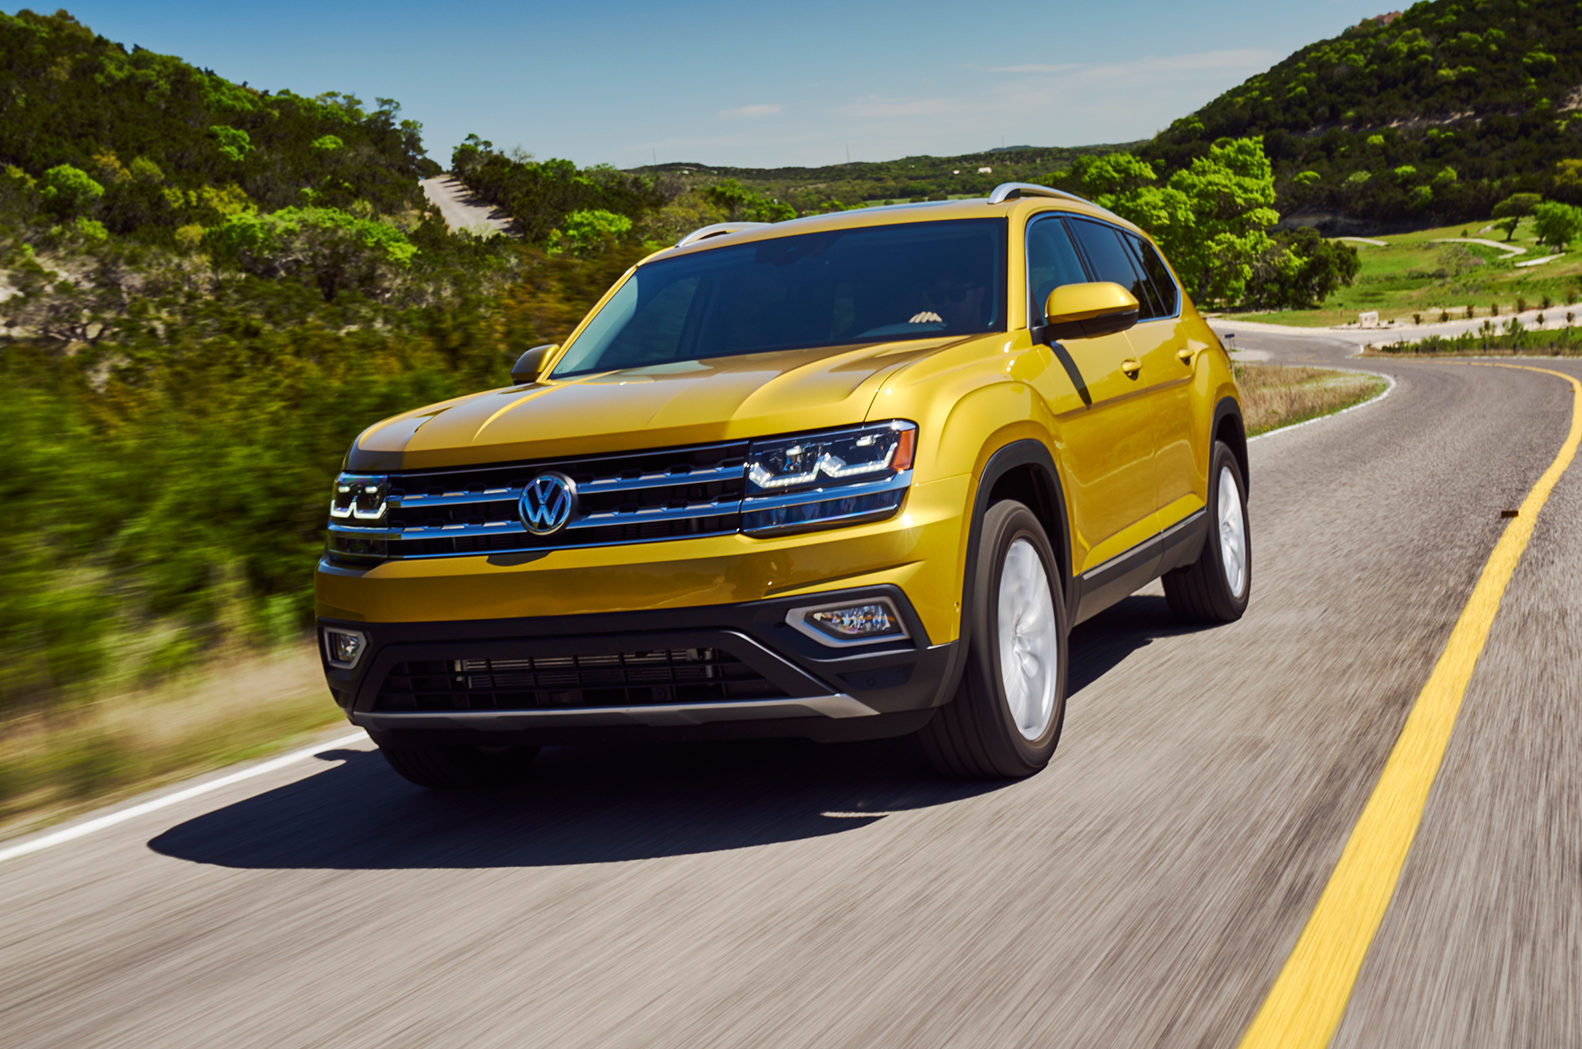 2018 Volkswagen Atlas Front Three Quarter In Motion 01 E1491507403135